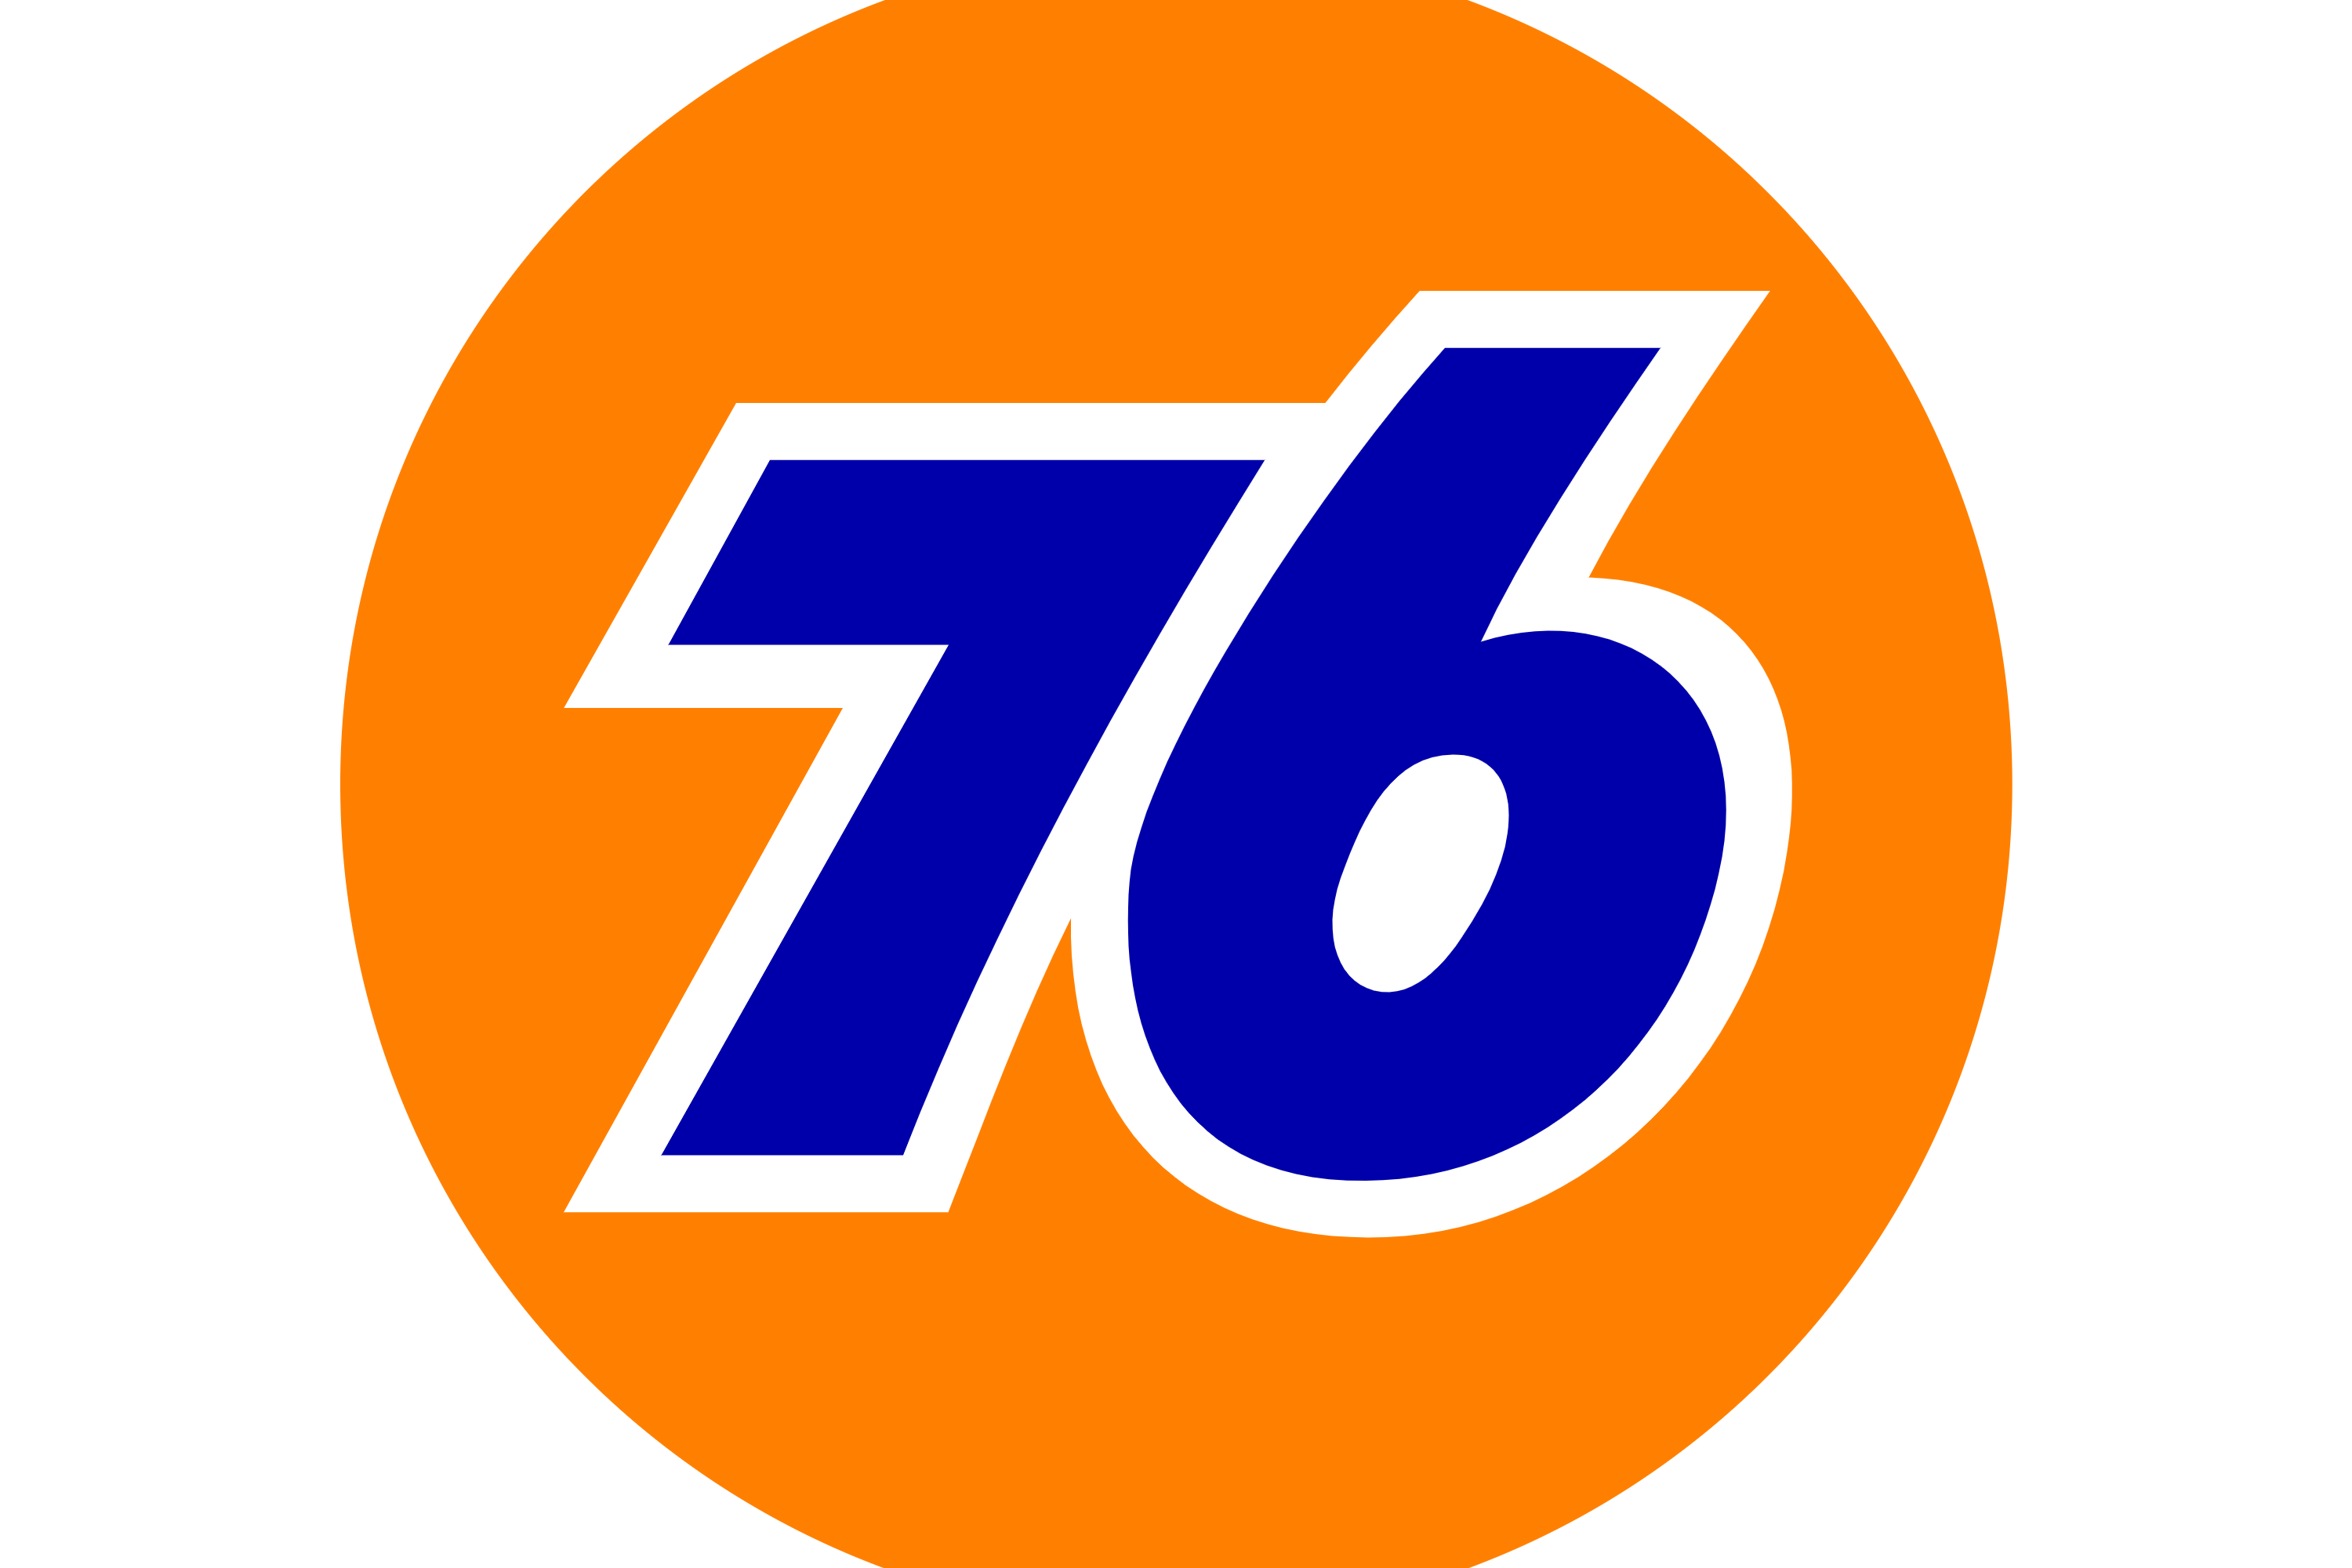 """76 Gas Station logo (blue """"76"""" outlined in white, inside and orange circle)"""